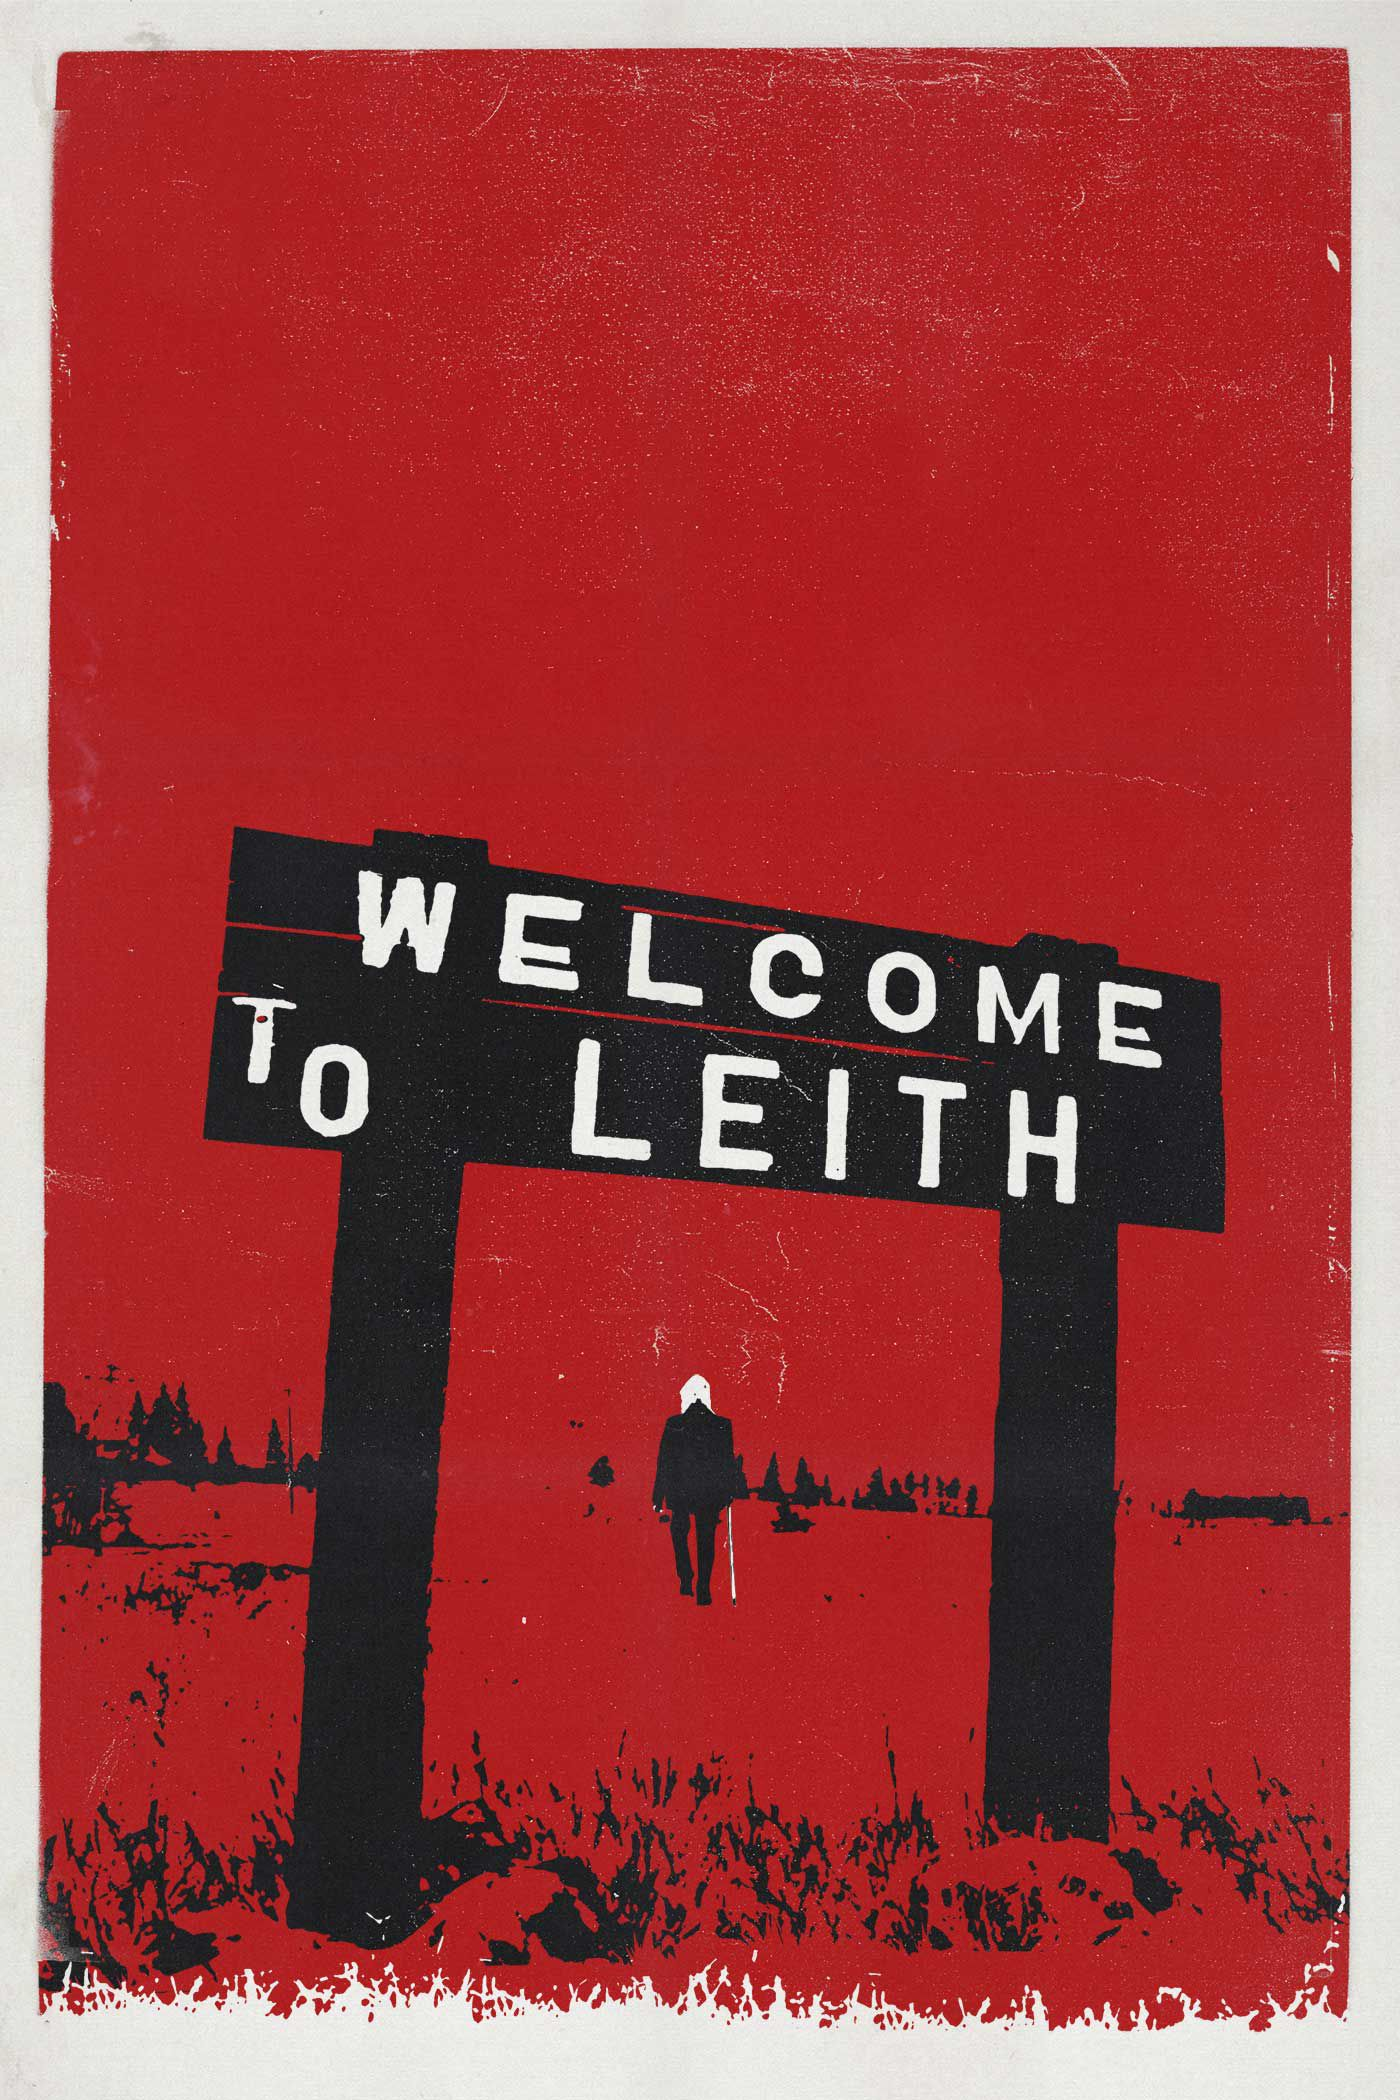 Welcome to Leith Movie Poster - Craig Cobb, Ryan Schock, Michelle Schock  #WelcomeToLeith, #CraigCobb, #RyanSchock, #MichelleSchock, #MichaelBeachNicholsChristopherKWalker, #Documentary, #Art, #Film, #Movie, #Poster